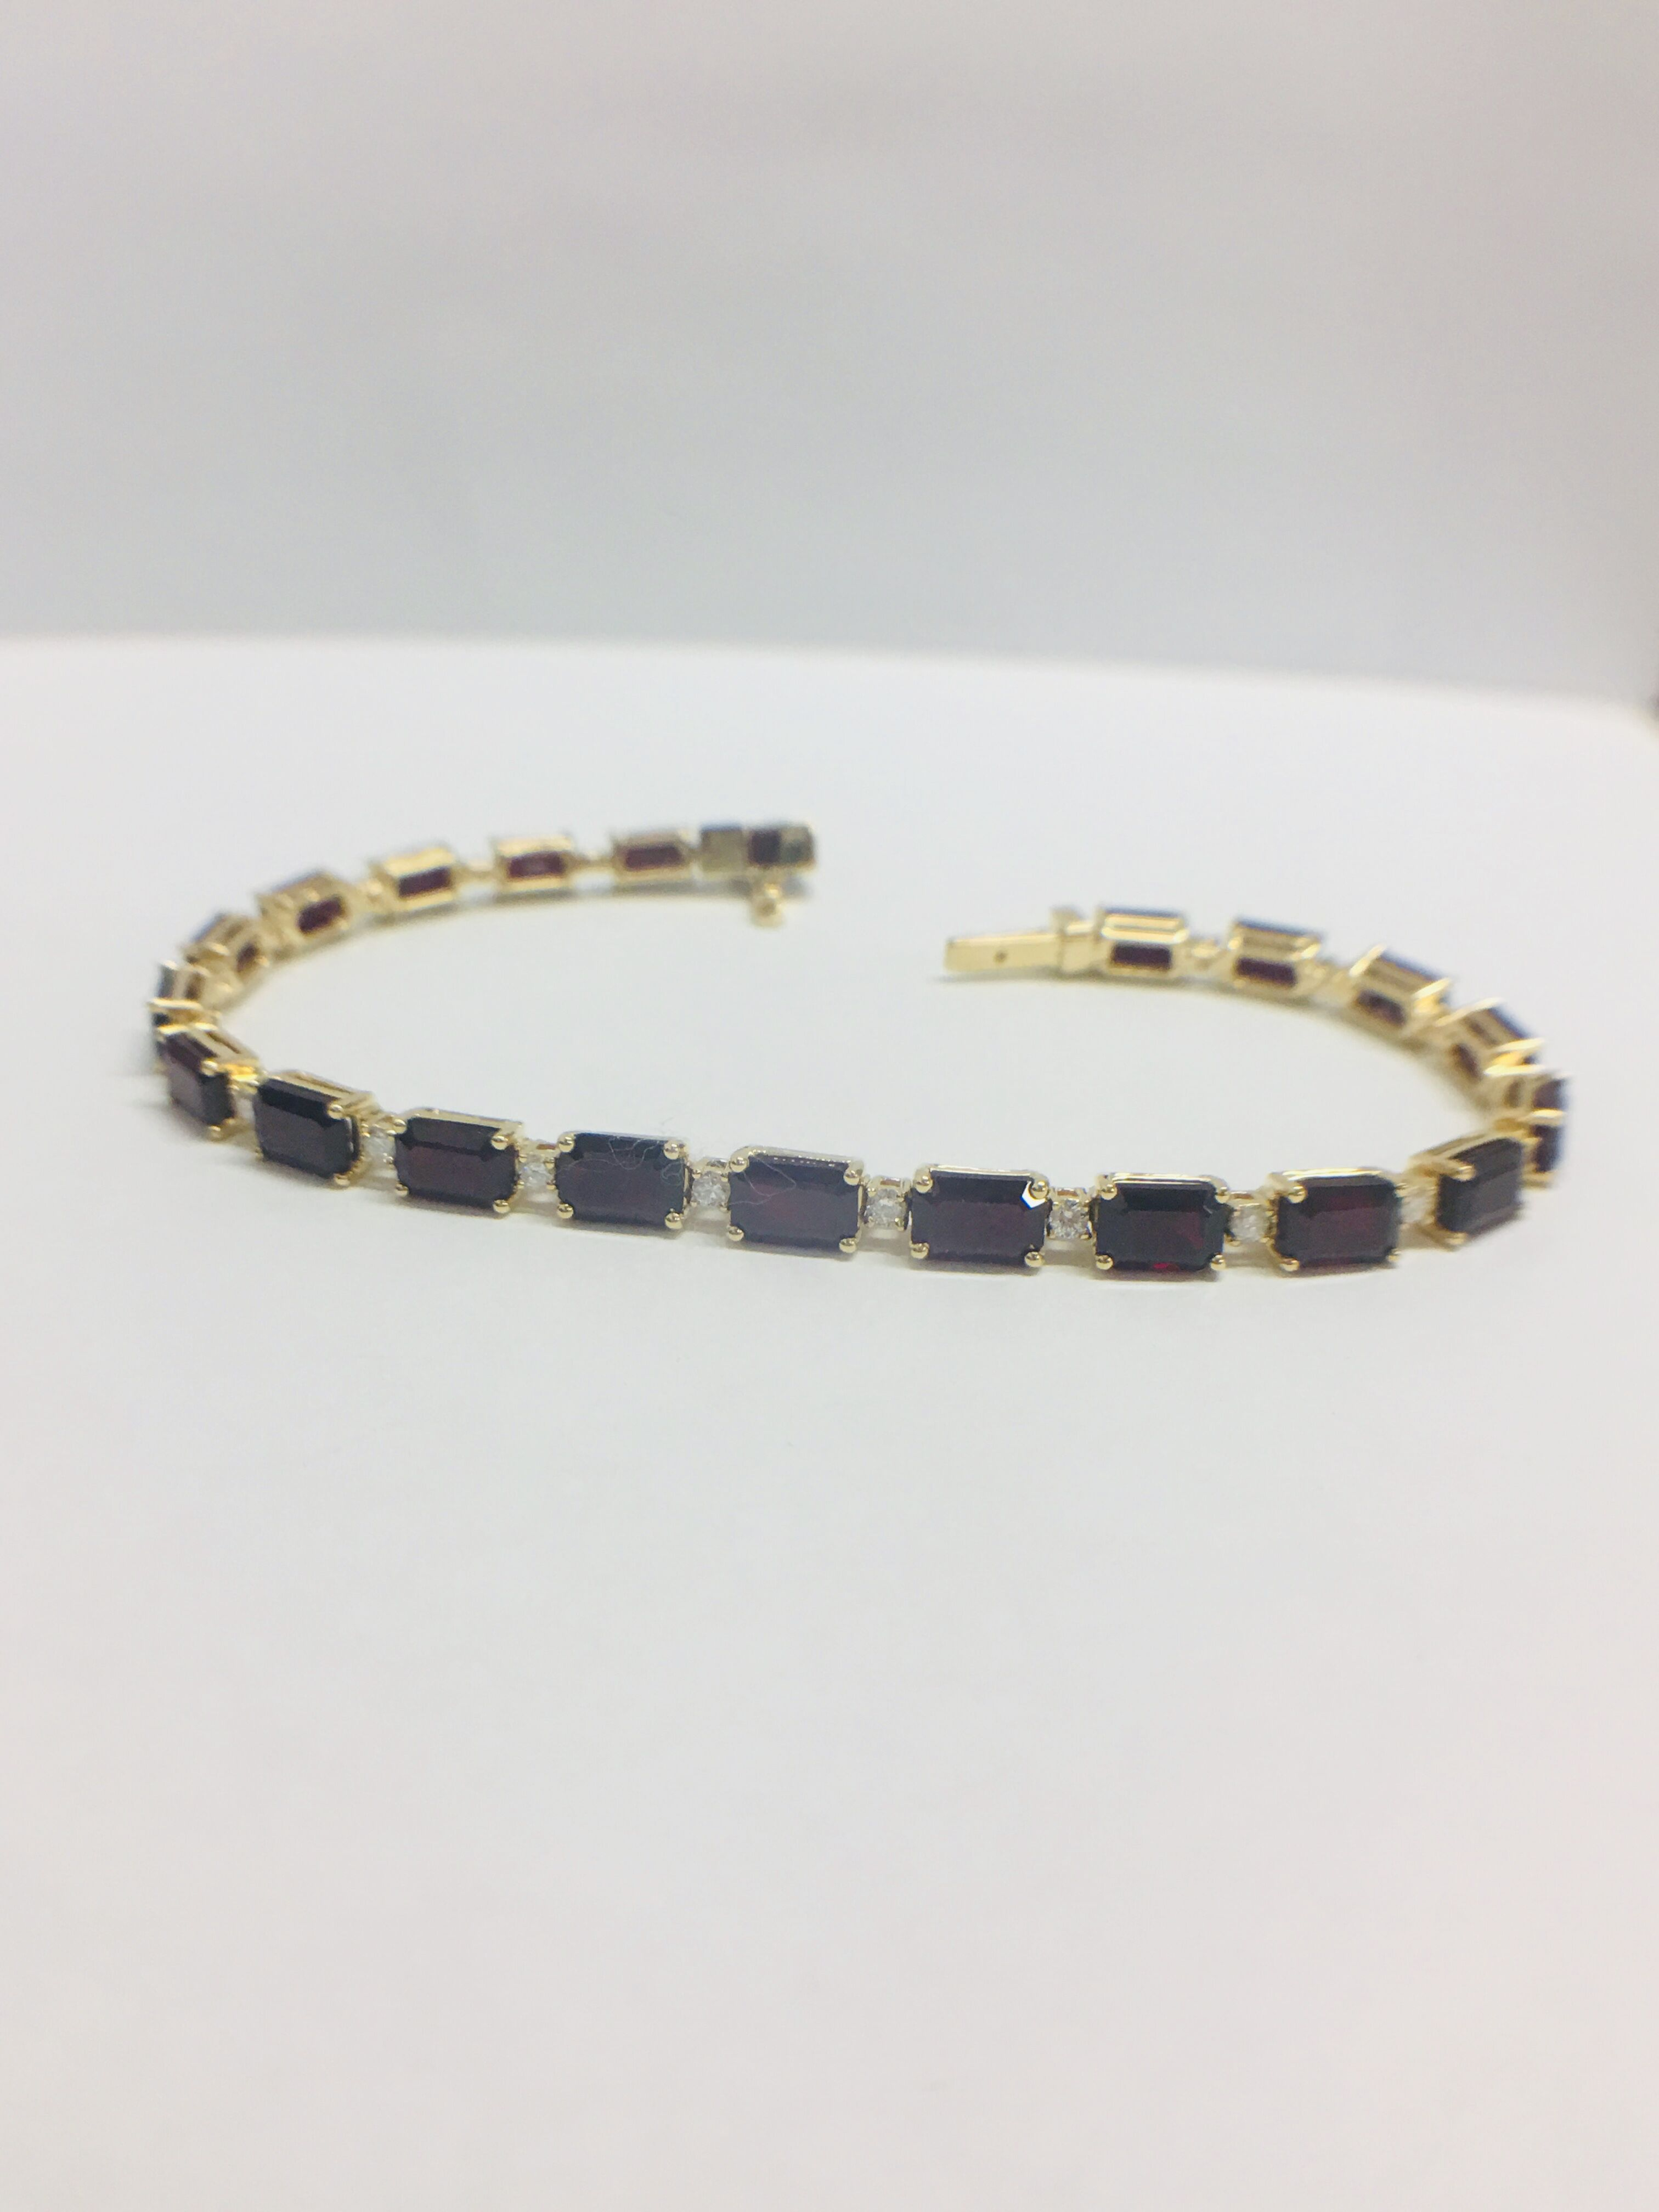 18ct yellow gold ruby and diamond tennis bracelet - Image 6 of 10